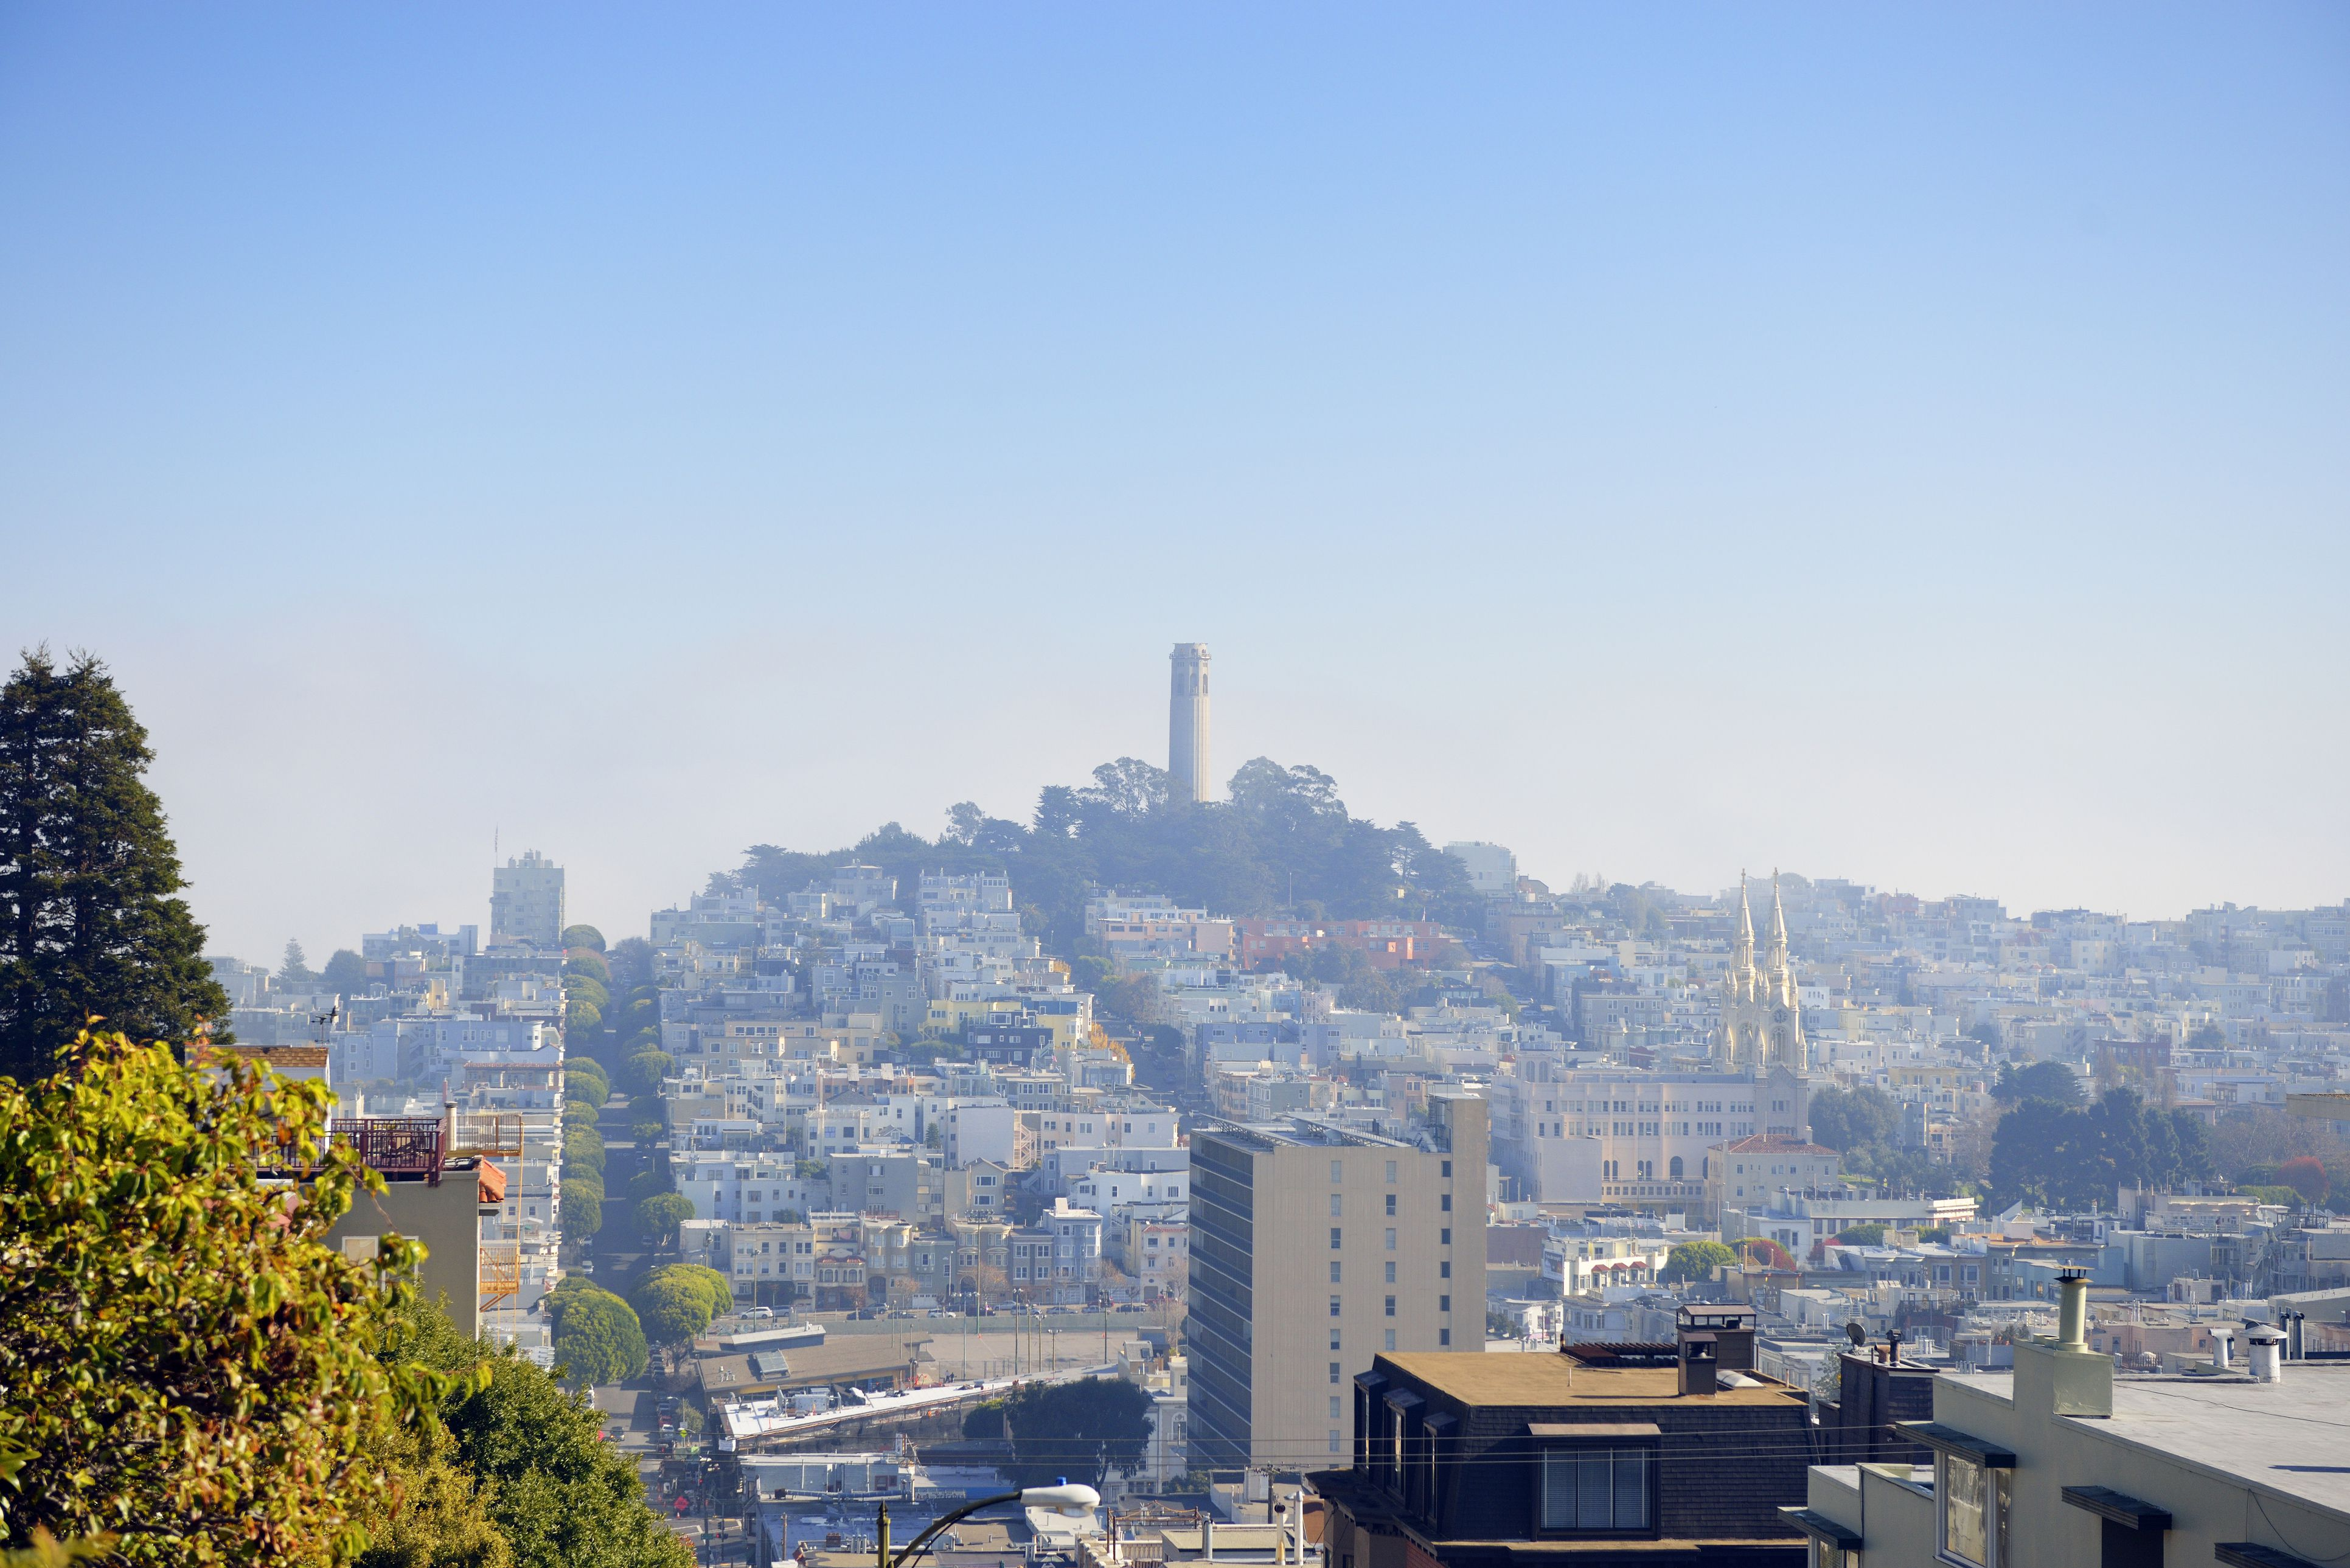 Guide To The 7 Hills Of San Francisco